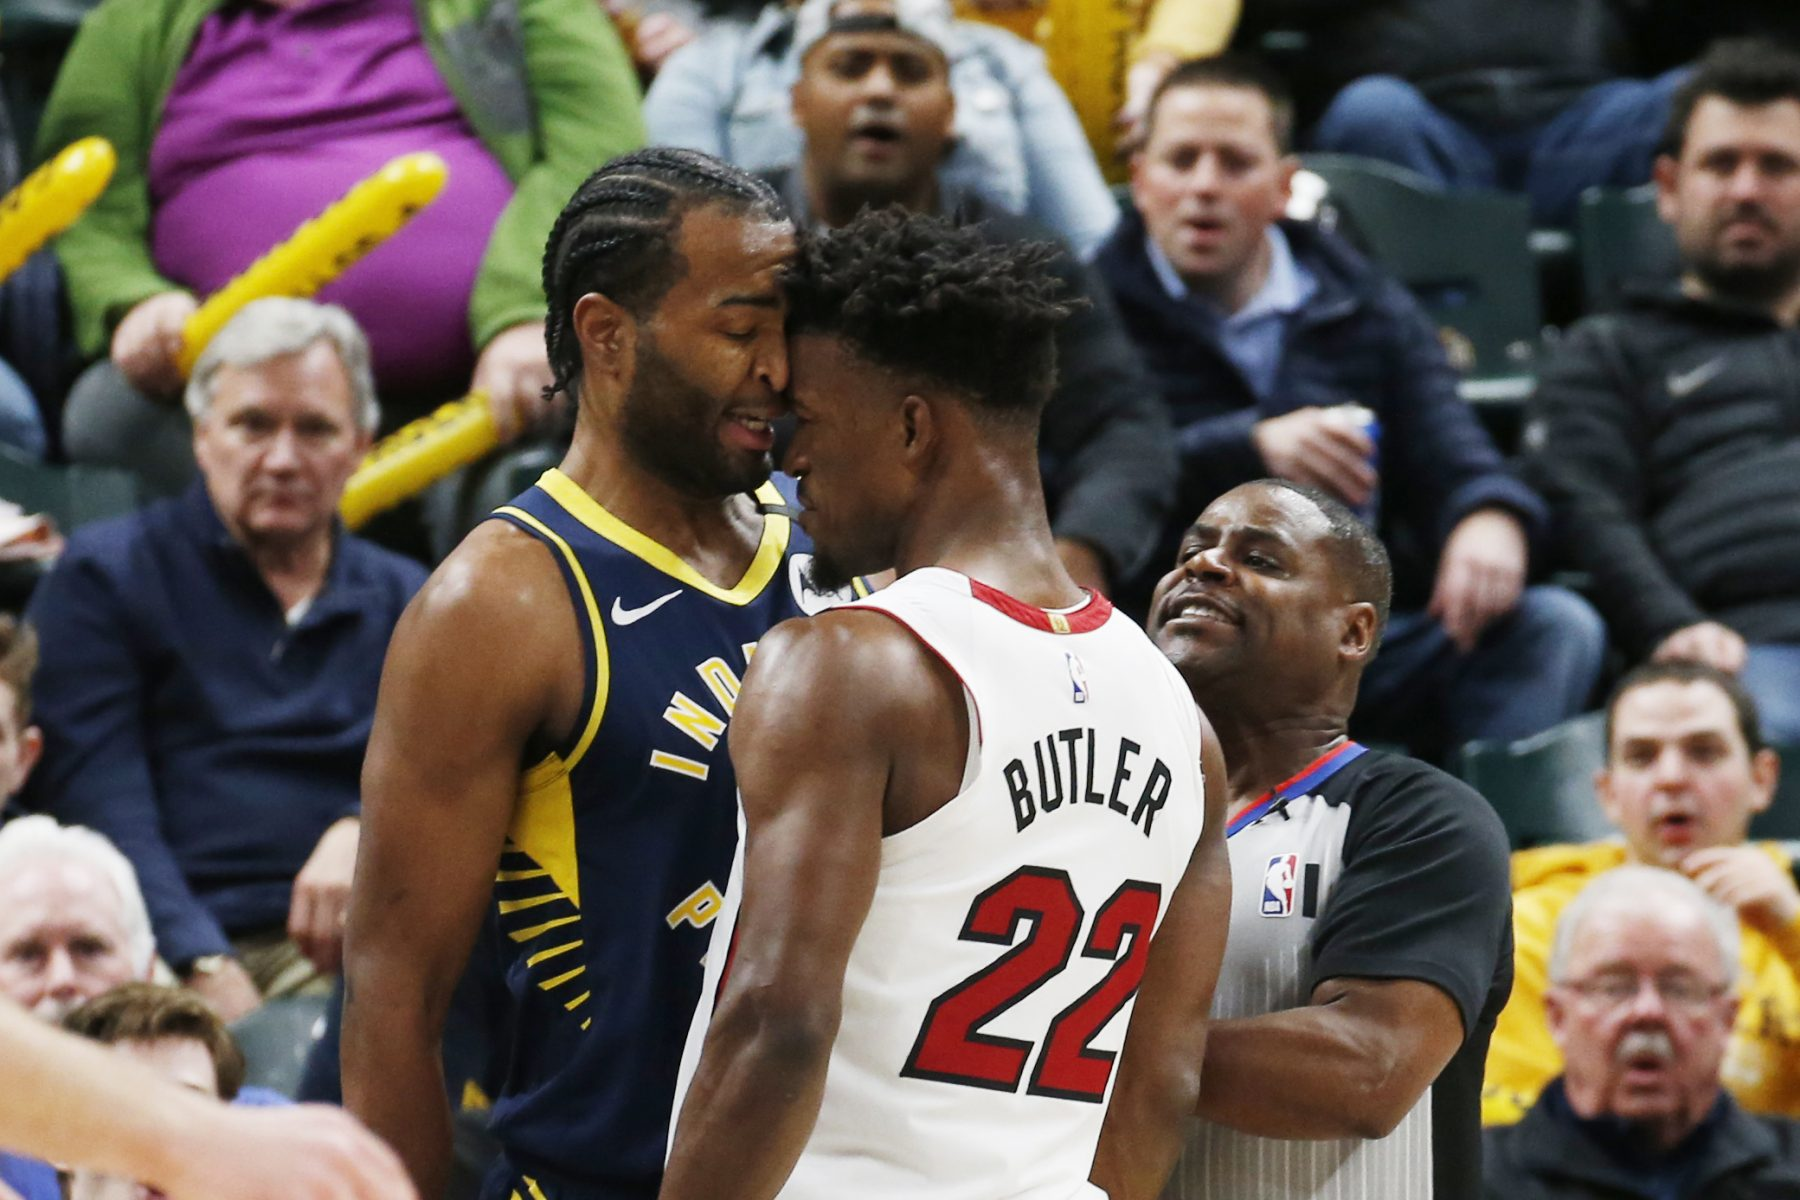 Butler blows farewell kisses after Pacers' Warren earns ejection